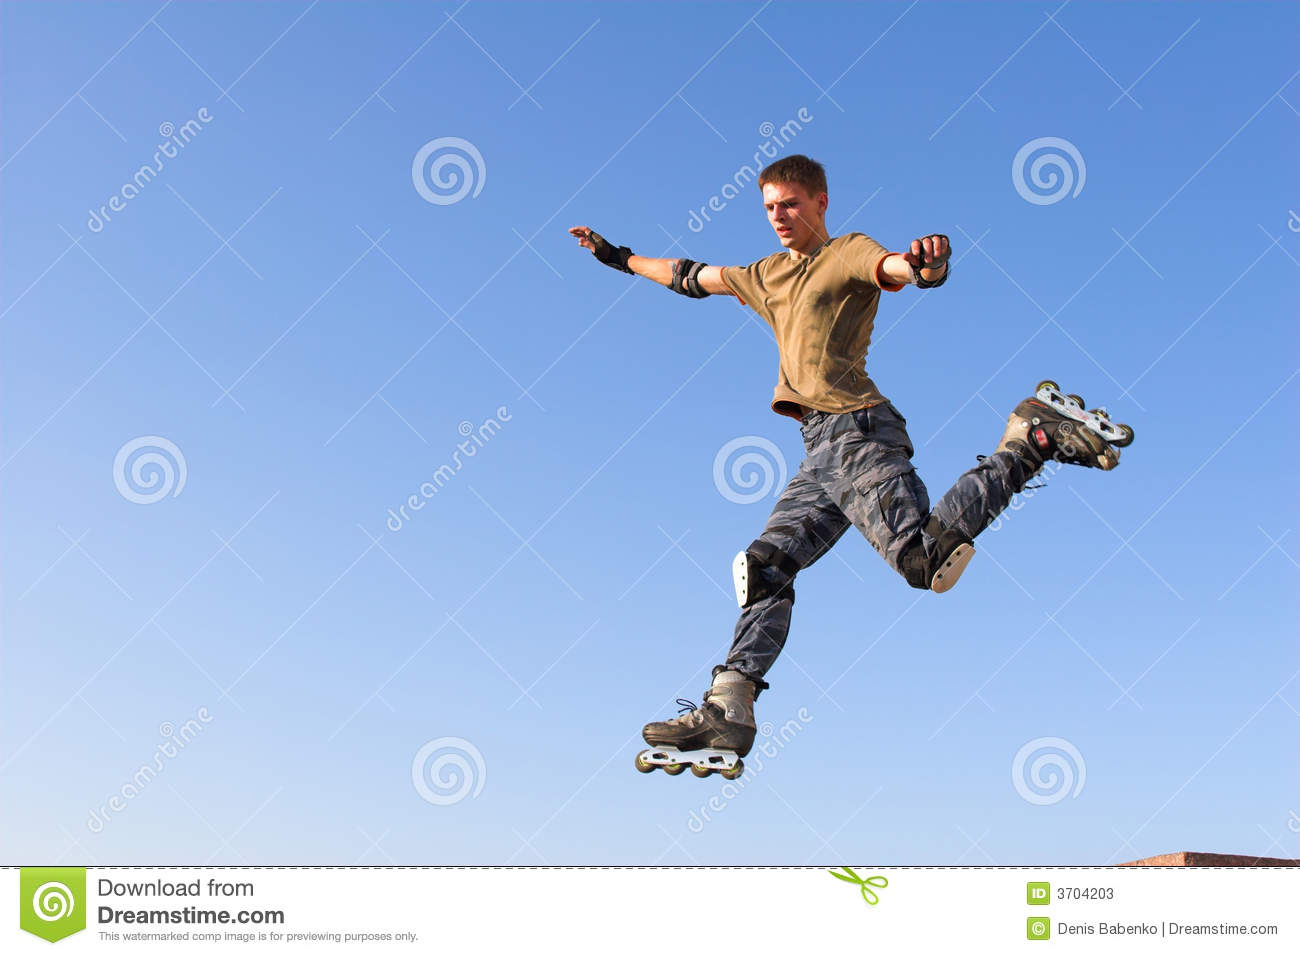 Roller boy jumping from parapet on the blue sky